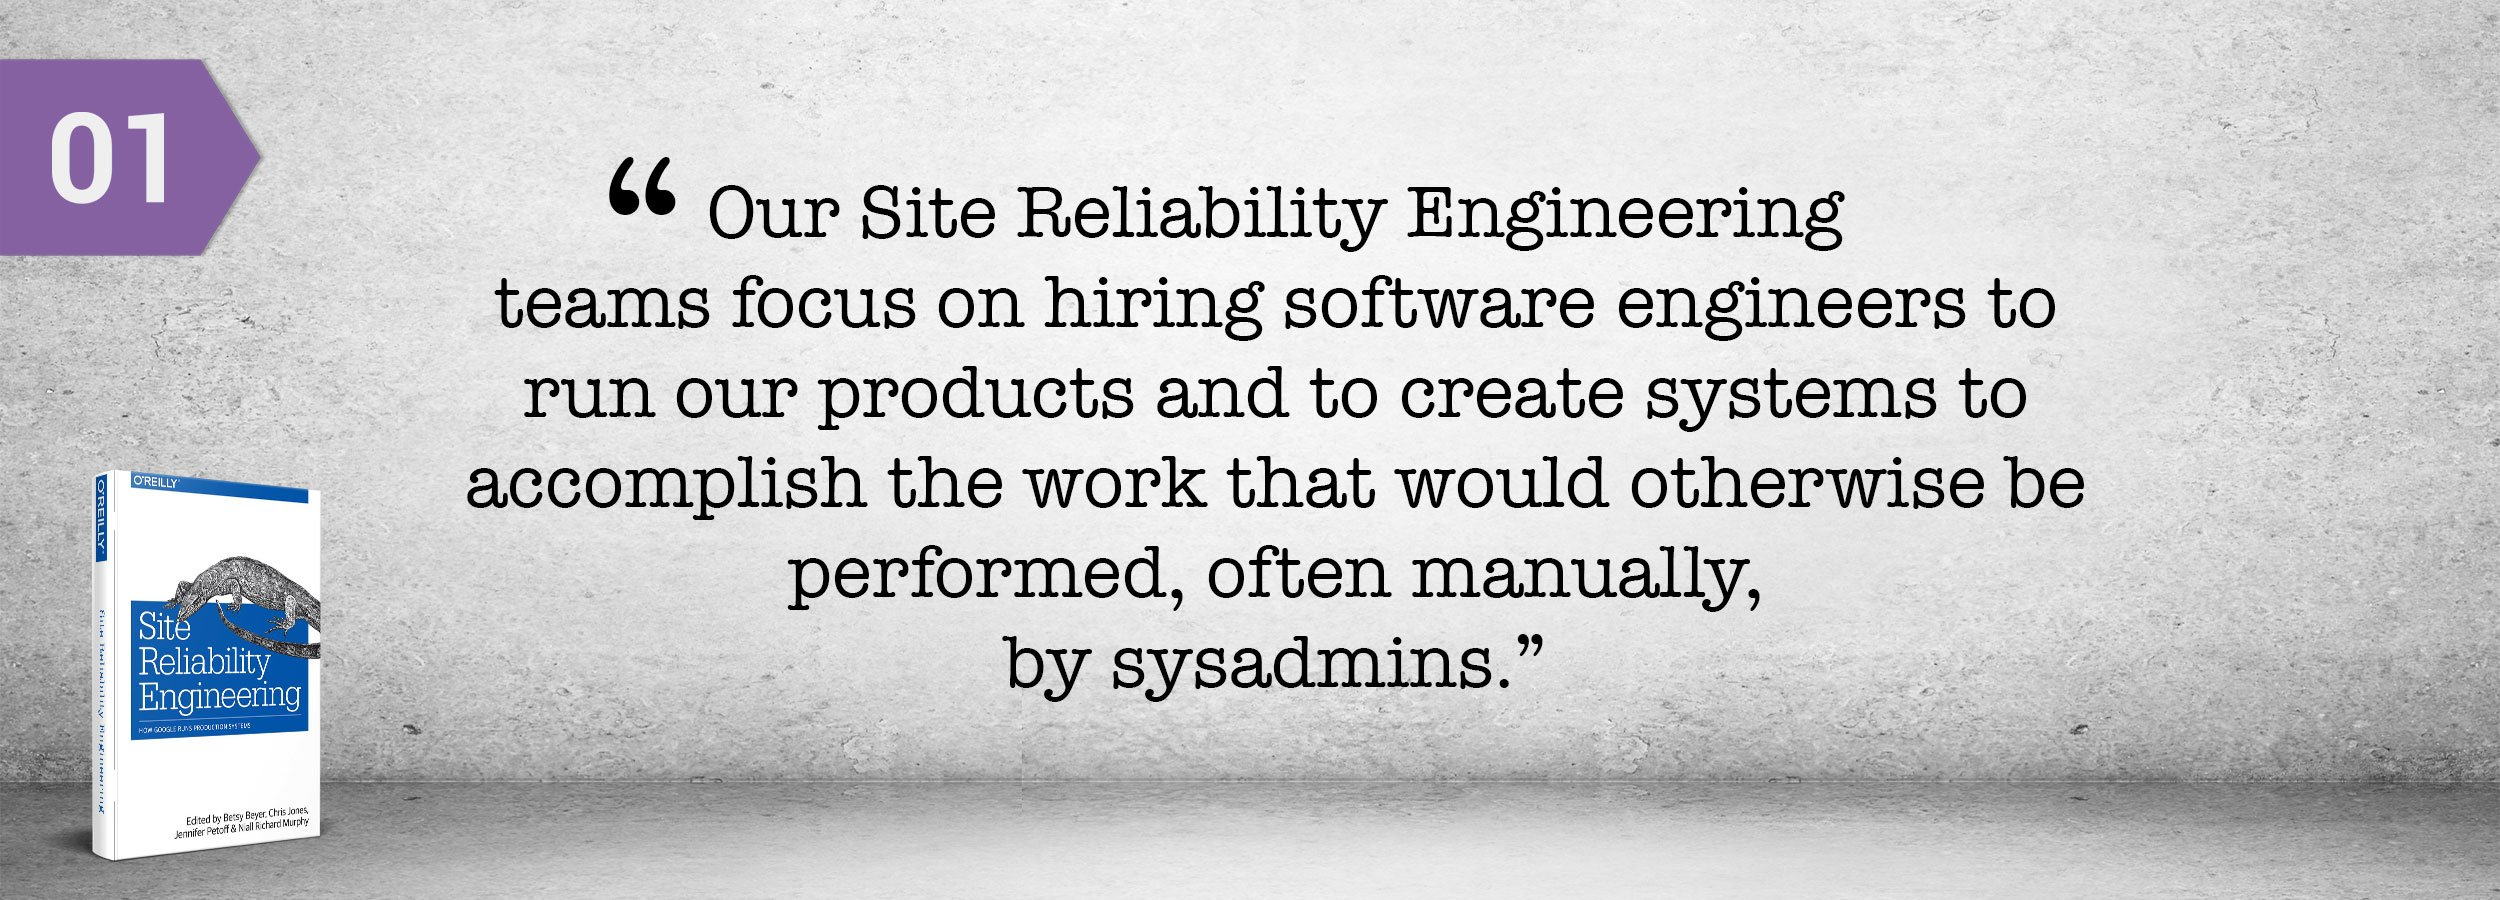 Site Reliability Engineering - Unique Hiring Approach